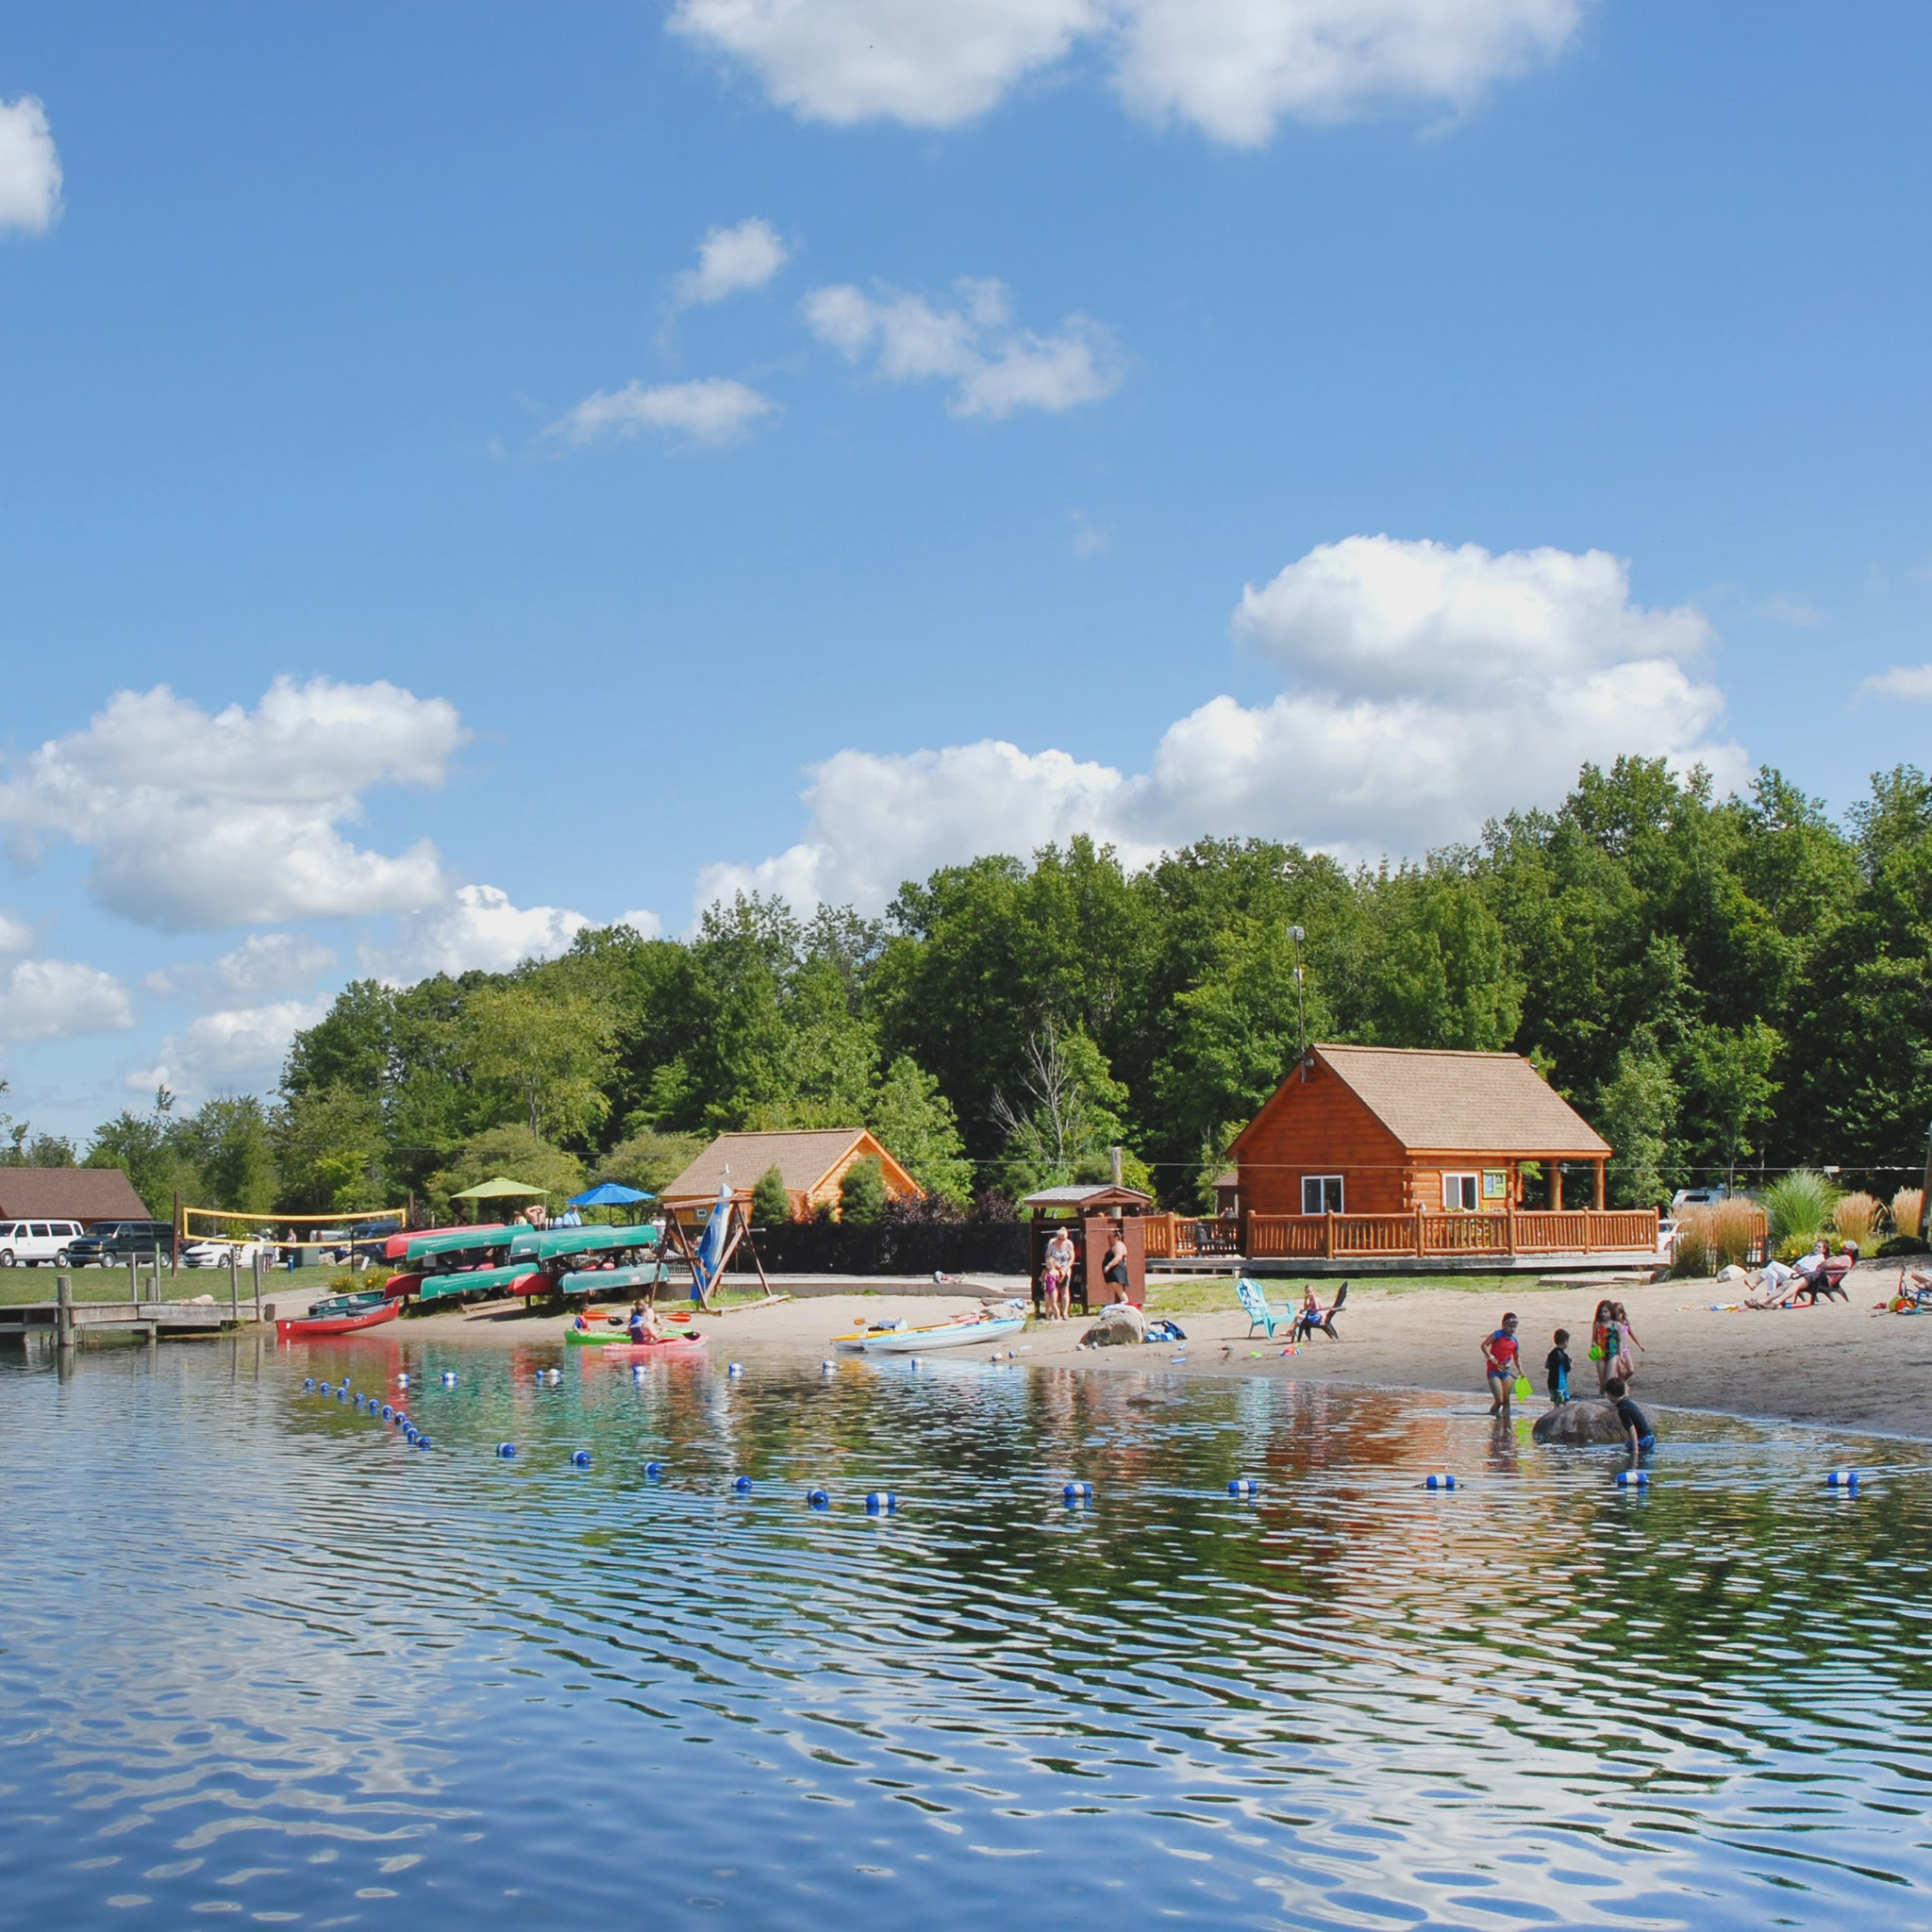 Beach and boat area at Branches of Niagara